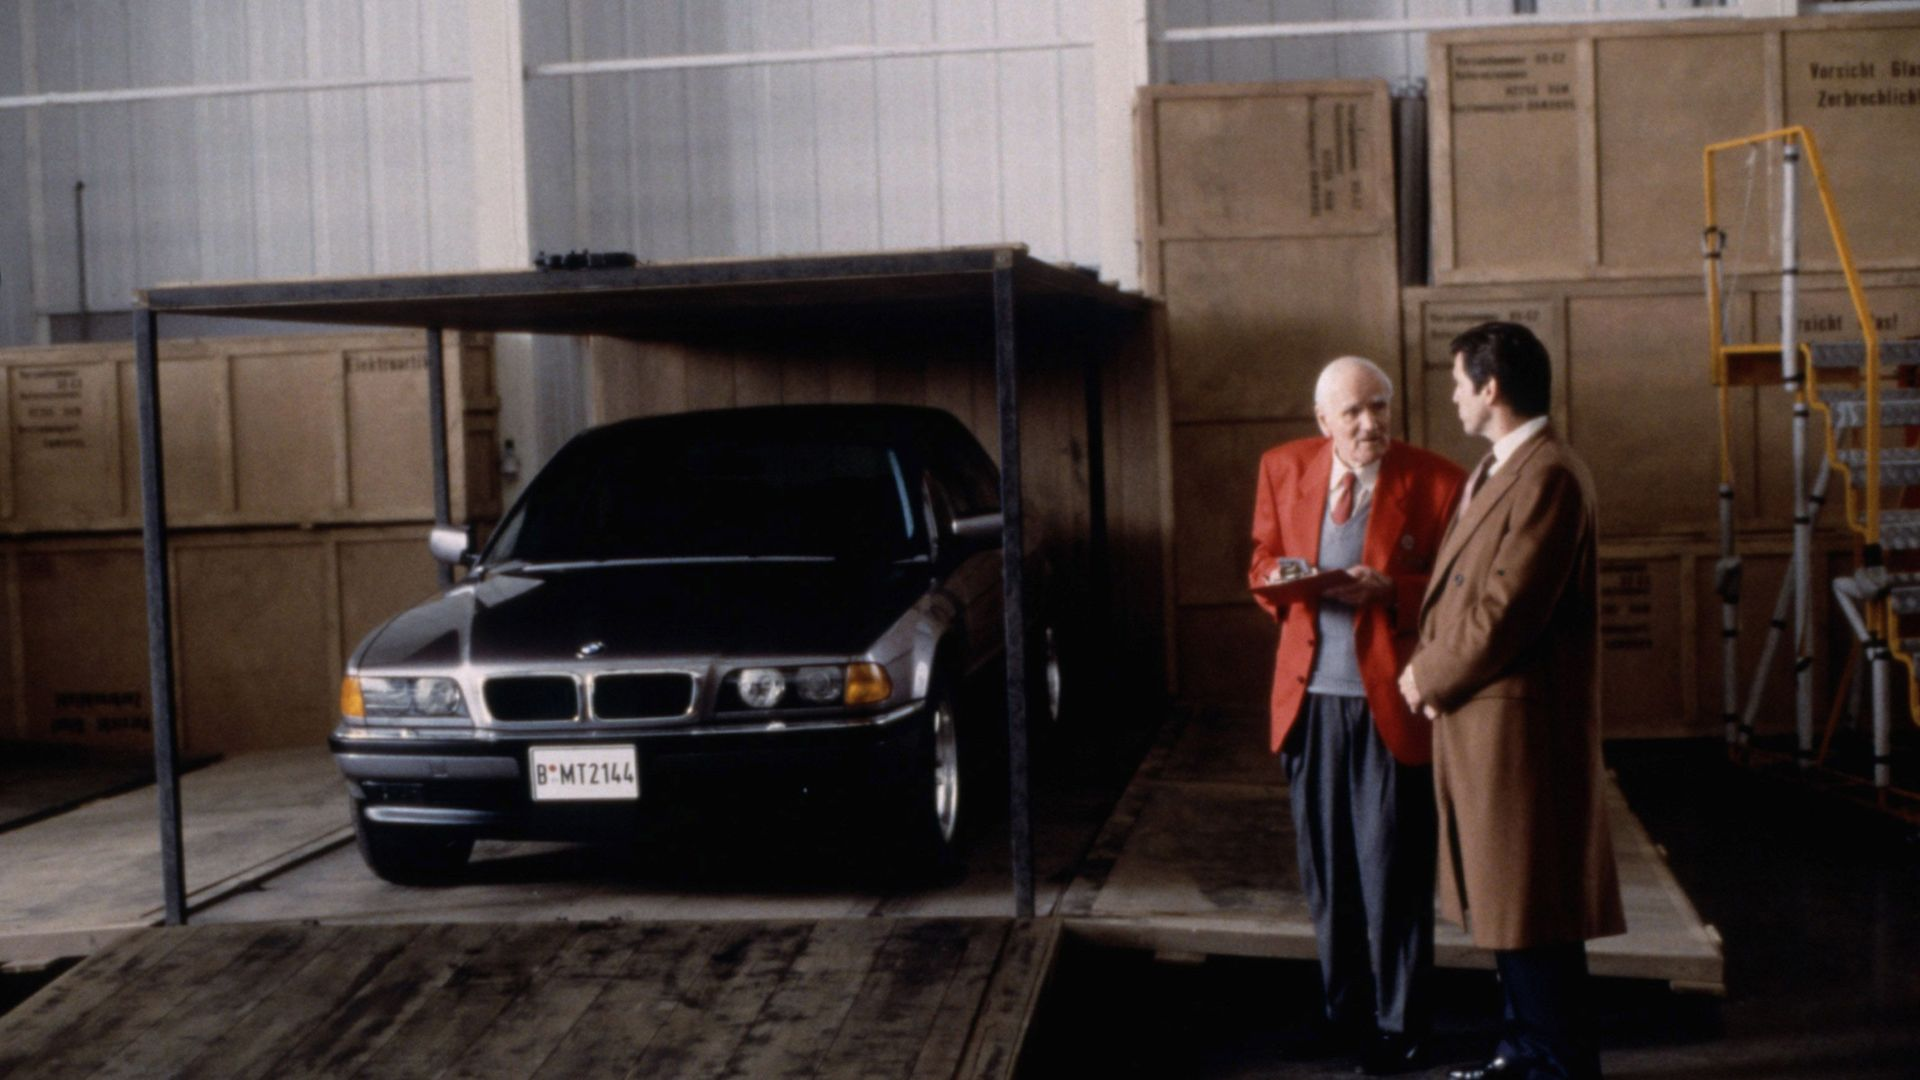 """Desmond Llewelyn, Pierce Brosnan with the BMW 750iL in """"Tomorrow Never Dies."""""""